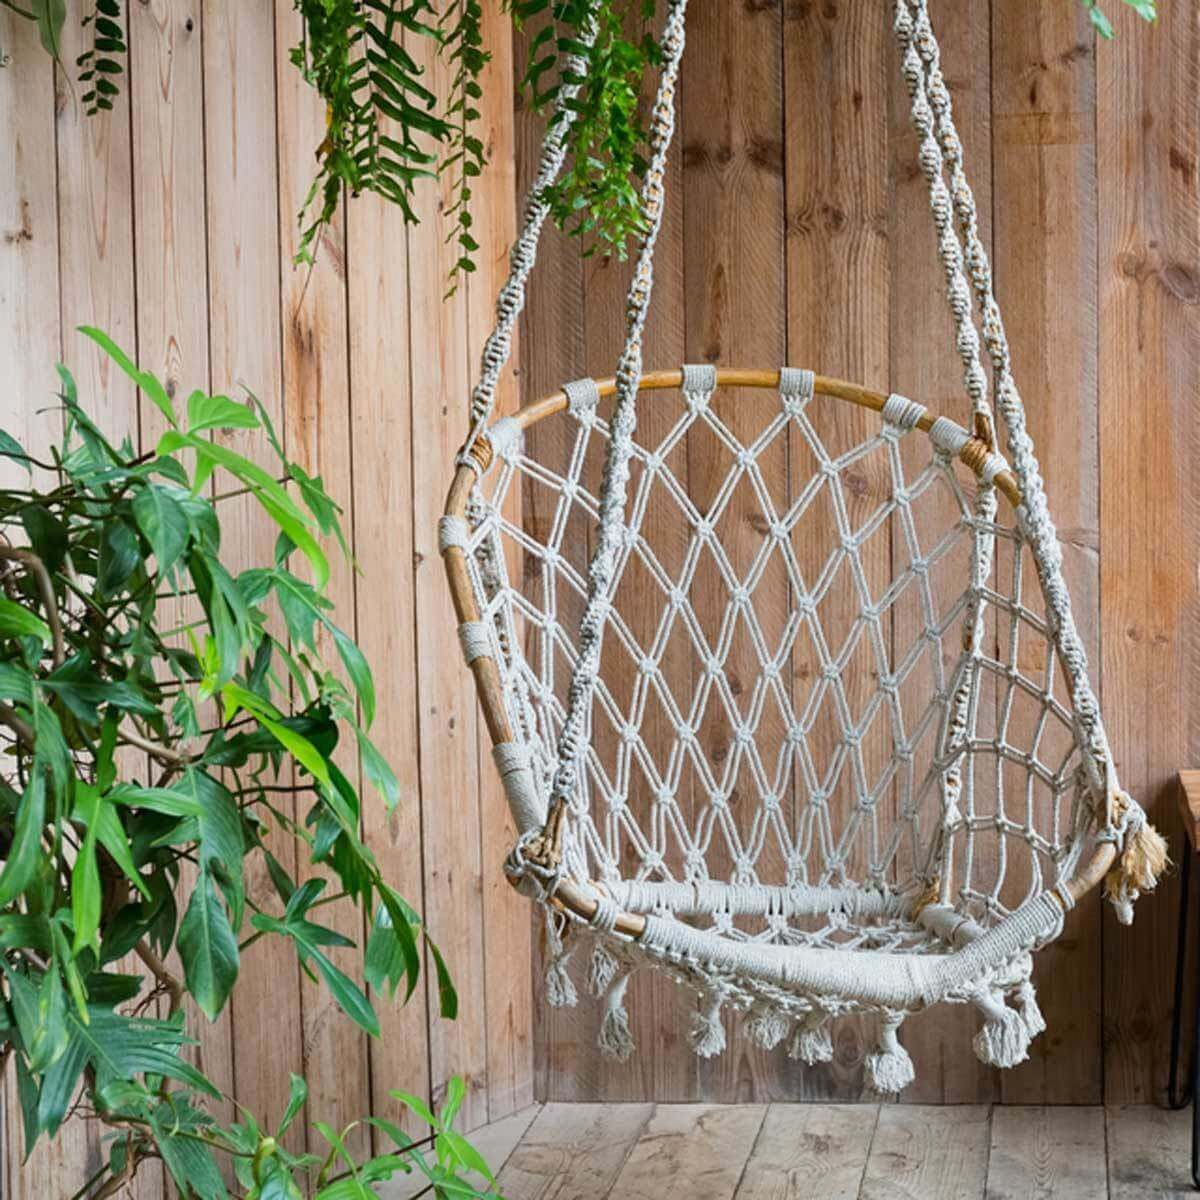 12 Backyard Swings Everyone Will Enjoy The Family Handyman